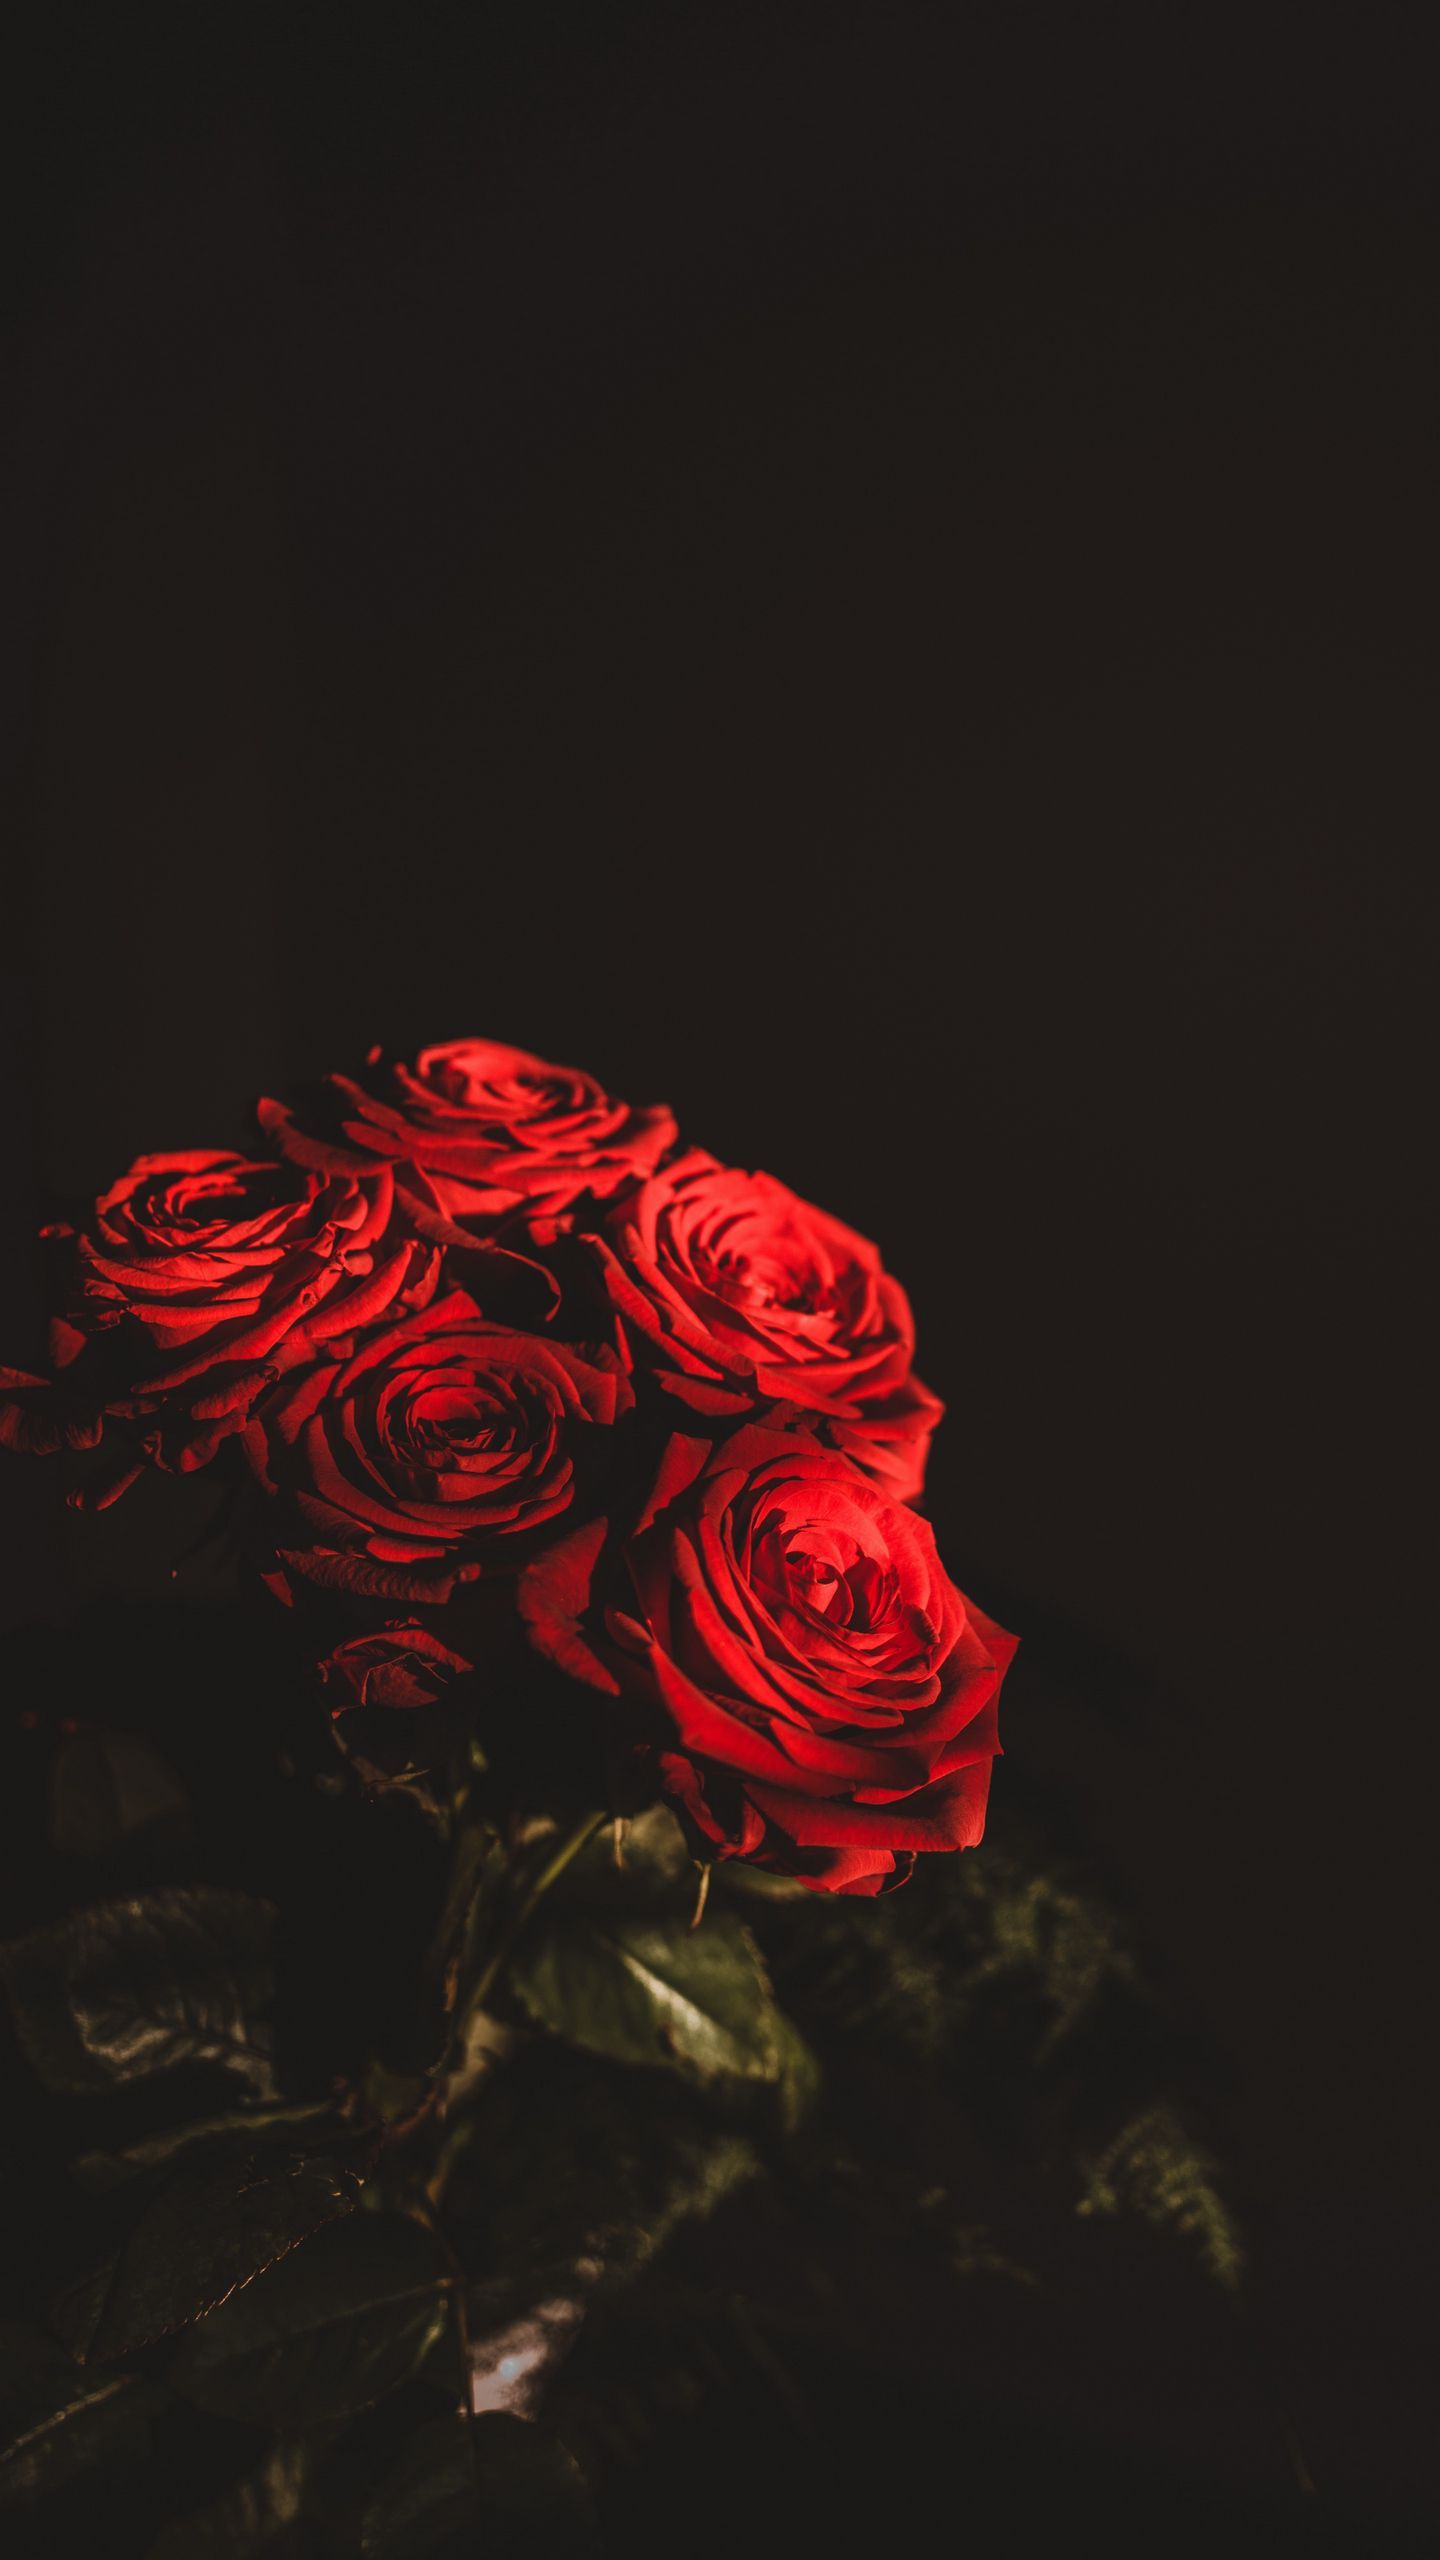 See My Collection Of Pretty Iphone And Android Flower Wallpapers And Background Images In Ultra H Red Flower Wallpaper Flower Wallpaper Flowers Dark Background